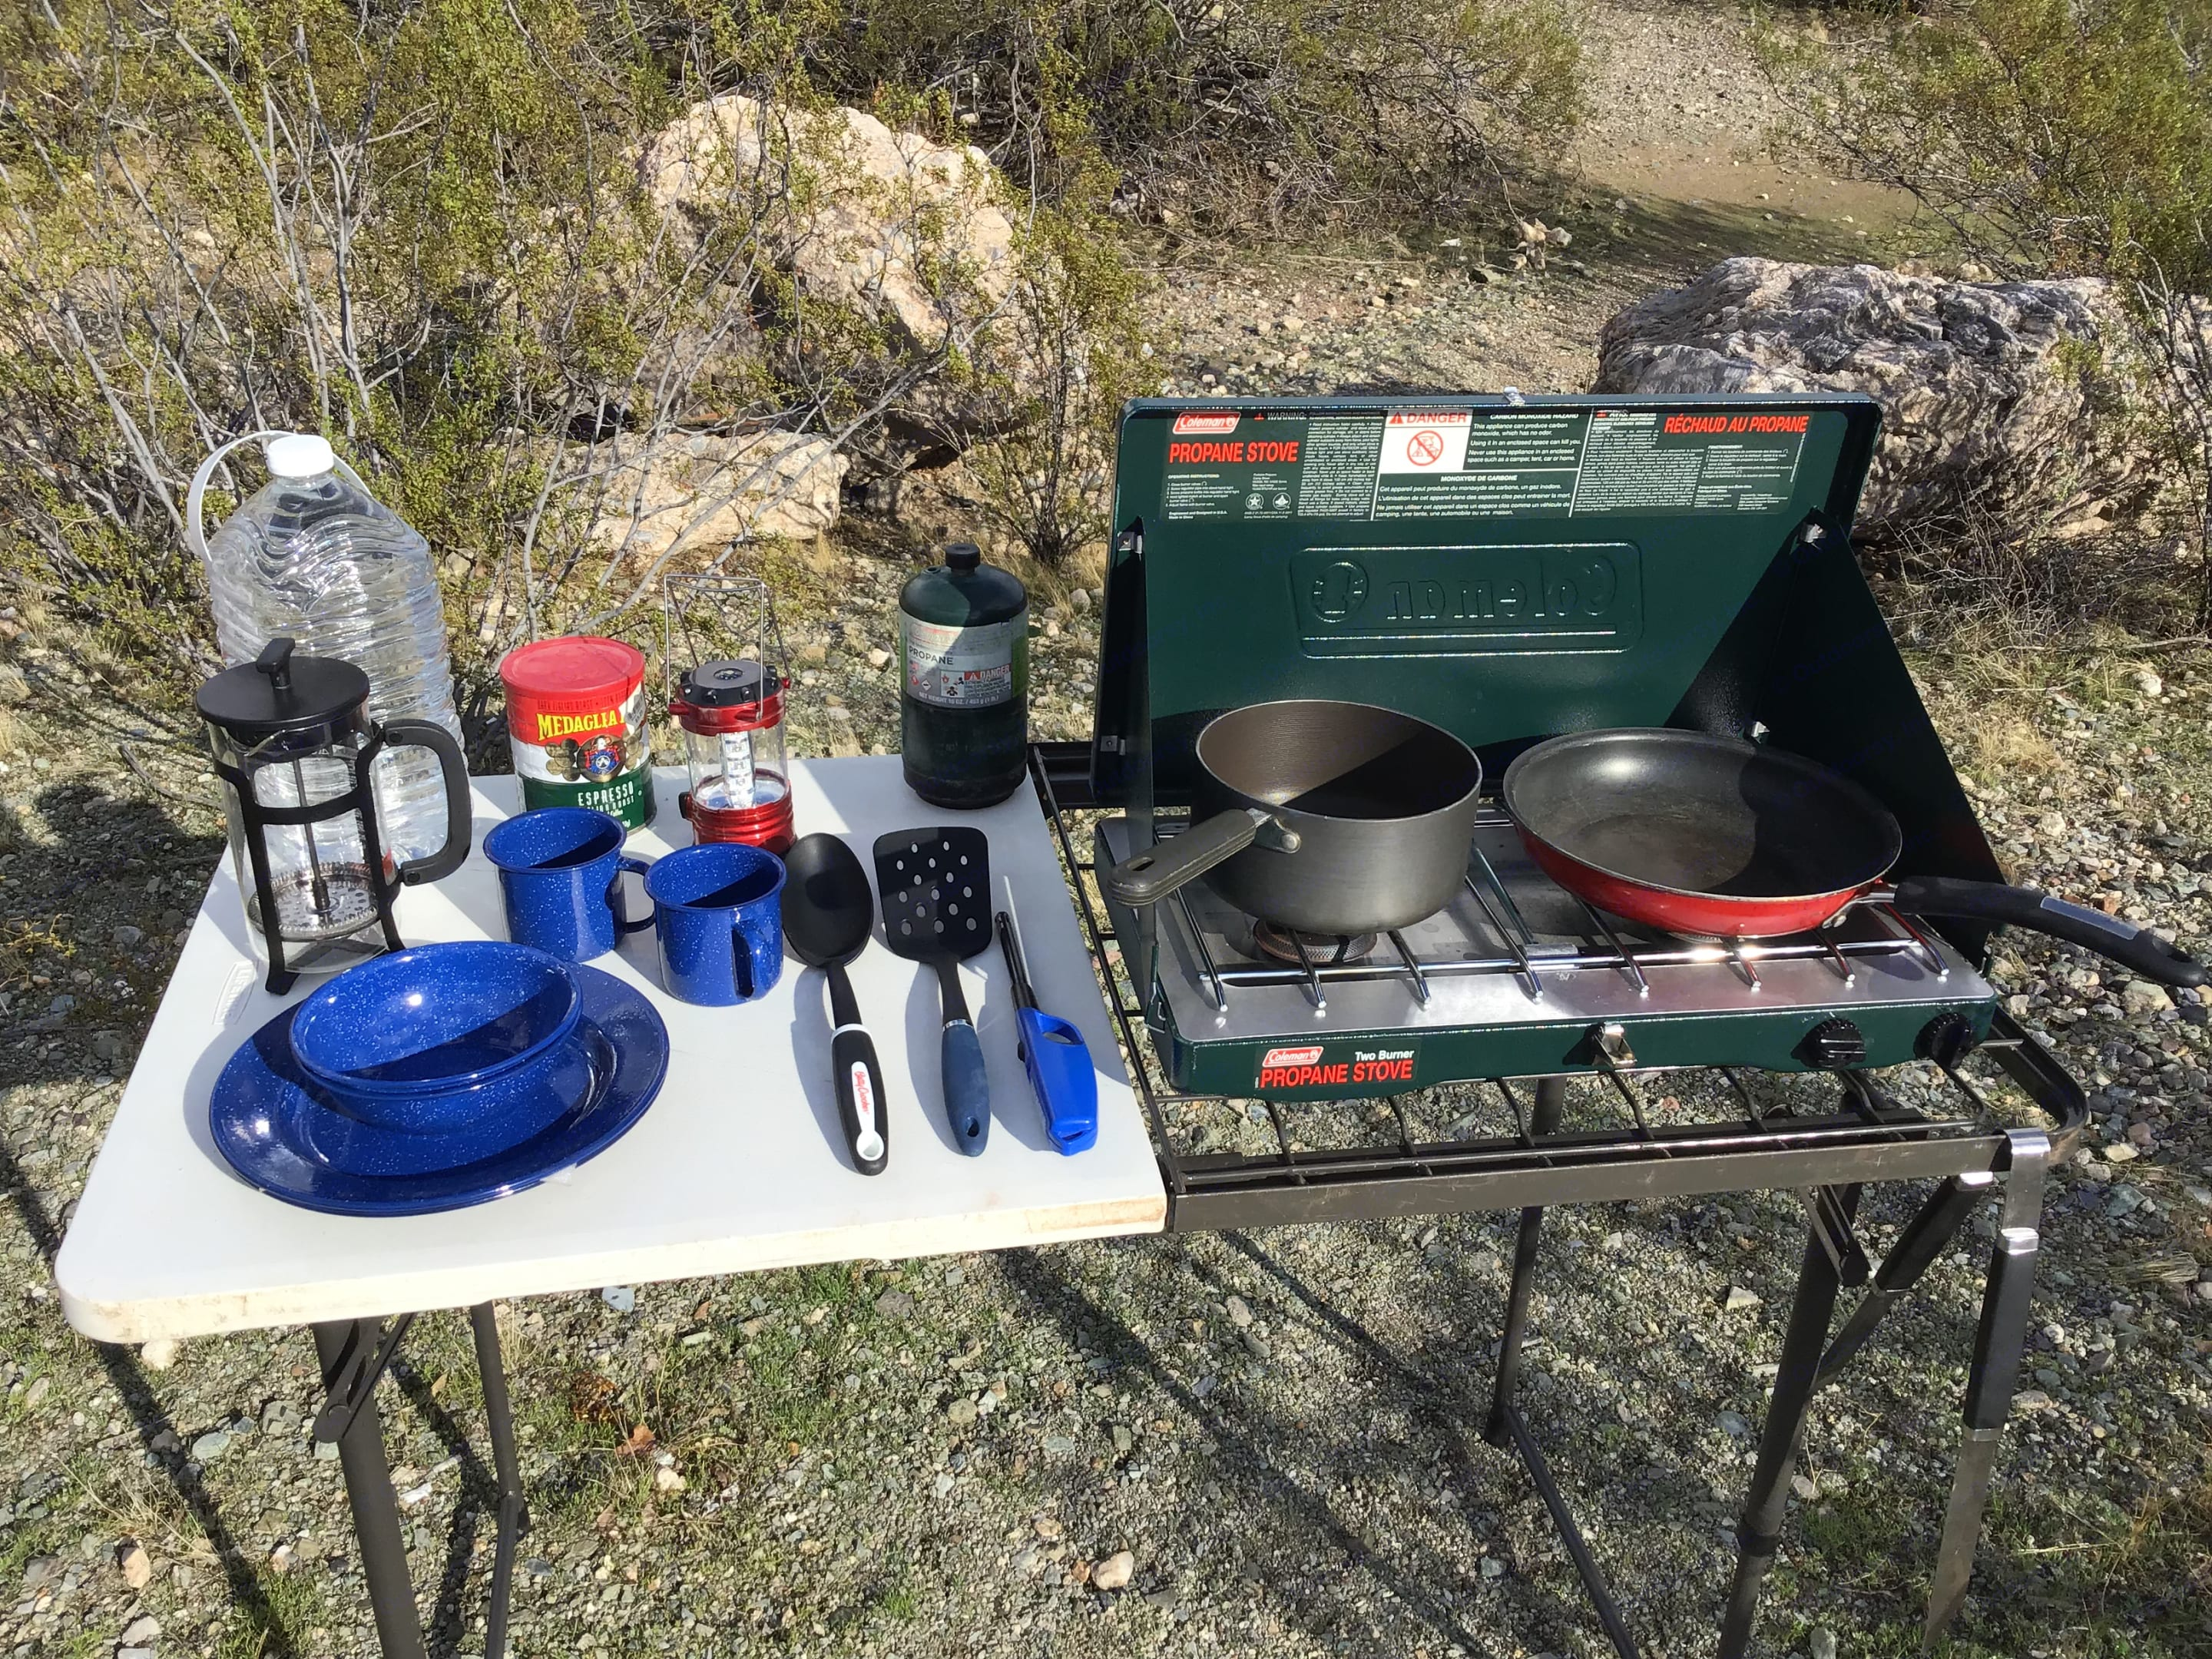 We include all the camping gear you need for your trip! (Comprehensive list of gear on our description page). Ford Expedition Camper Van Camper Van Adventure Rig 2005